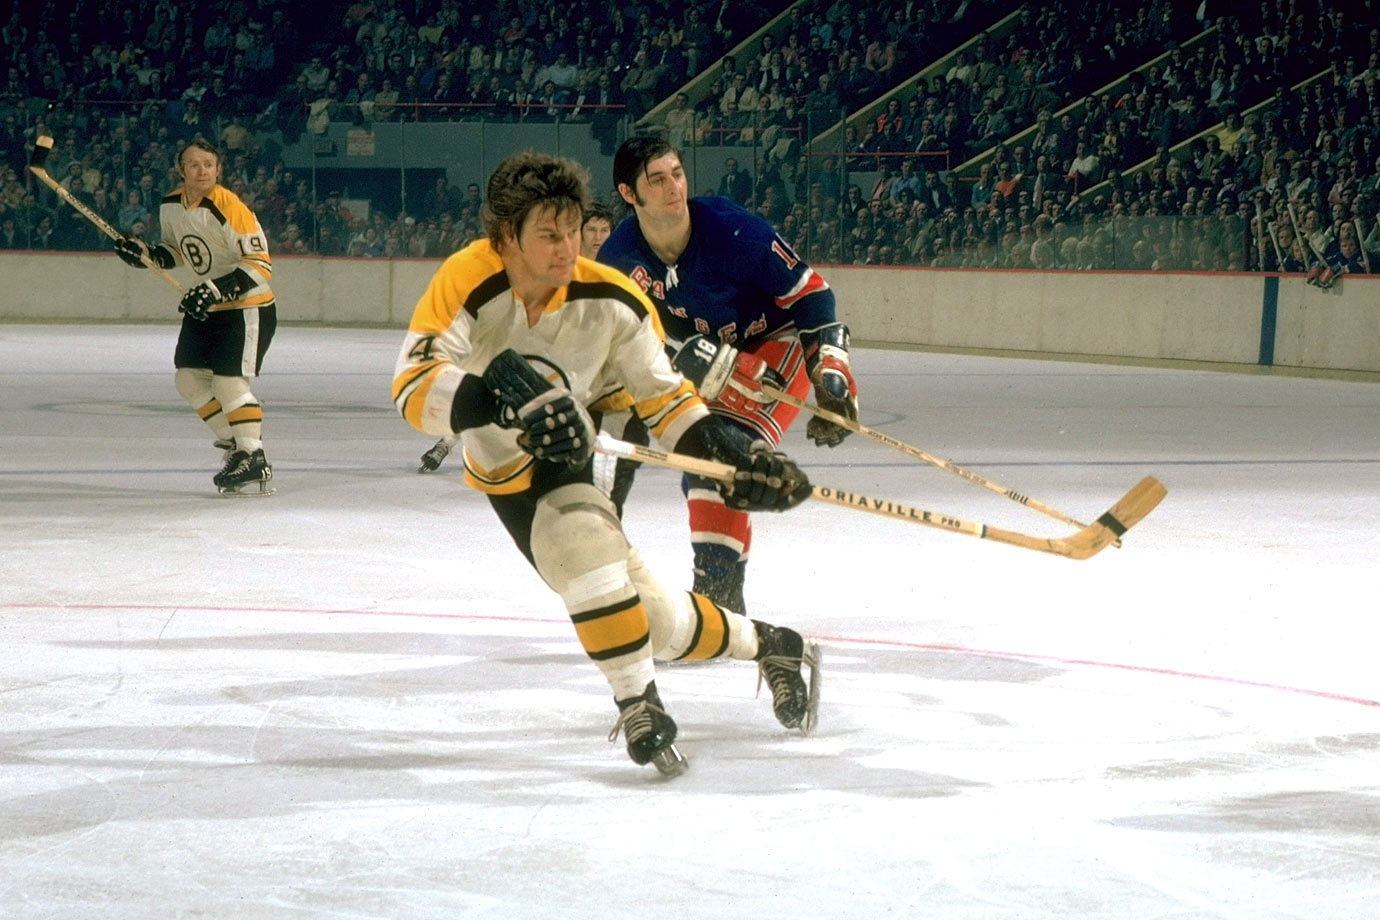 The NHL's first million dollar player when he signed a five-year contract at $200,000 per season prior to the 1971-72 campaign, Bobby Orr proved to be worth every penny, scoring 37 goals and 117 points.